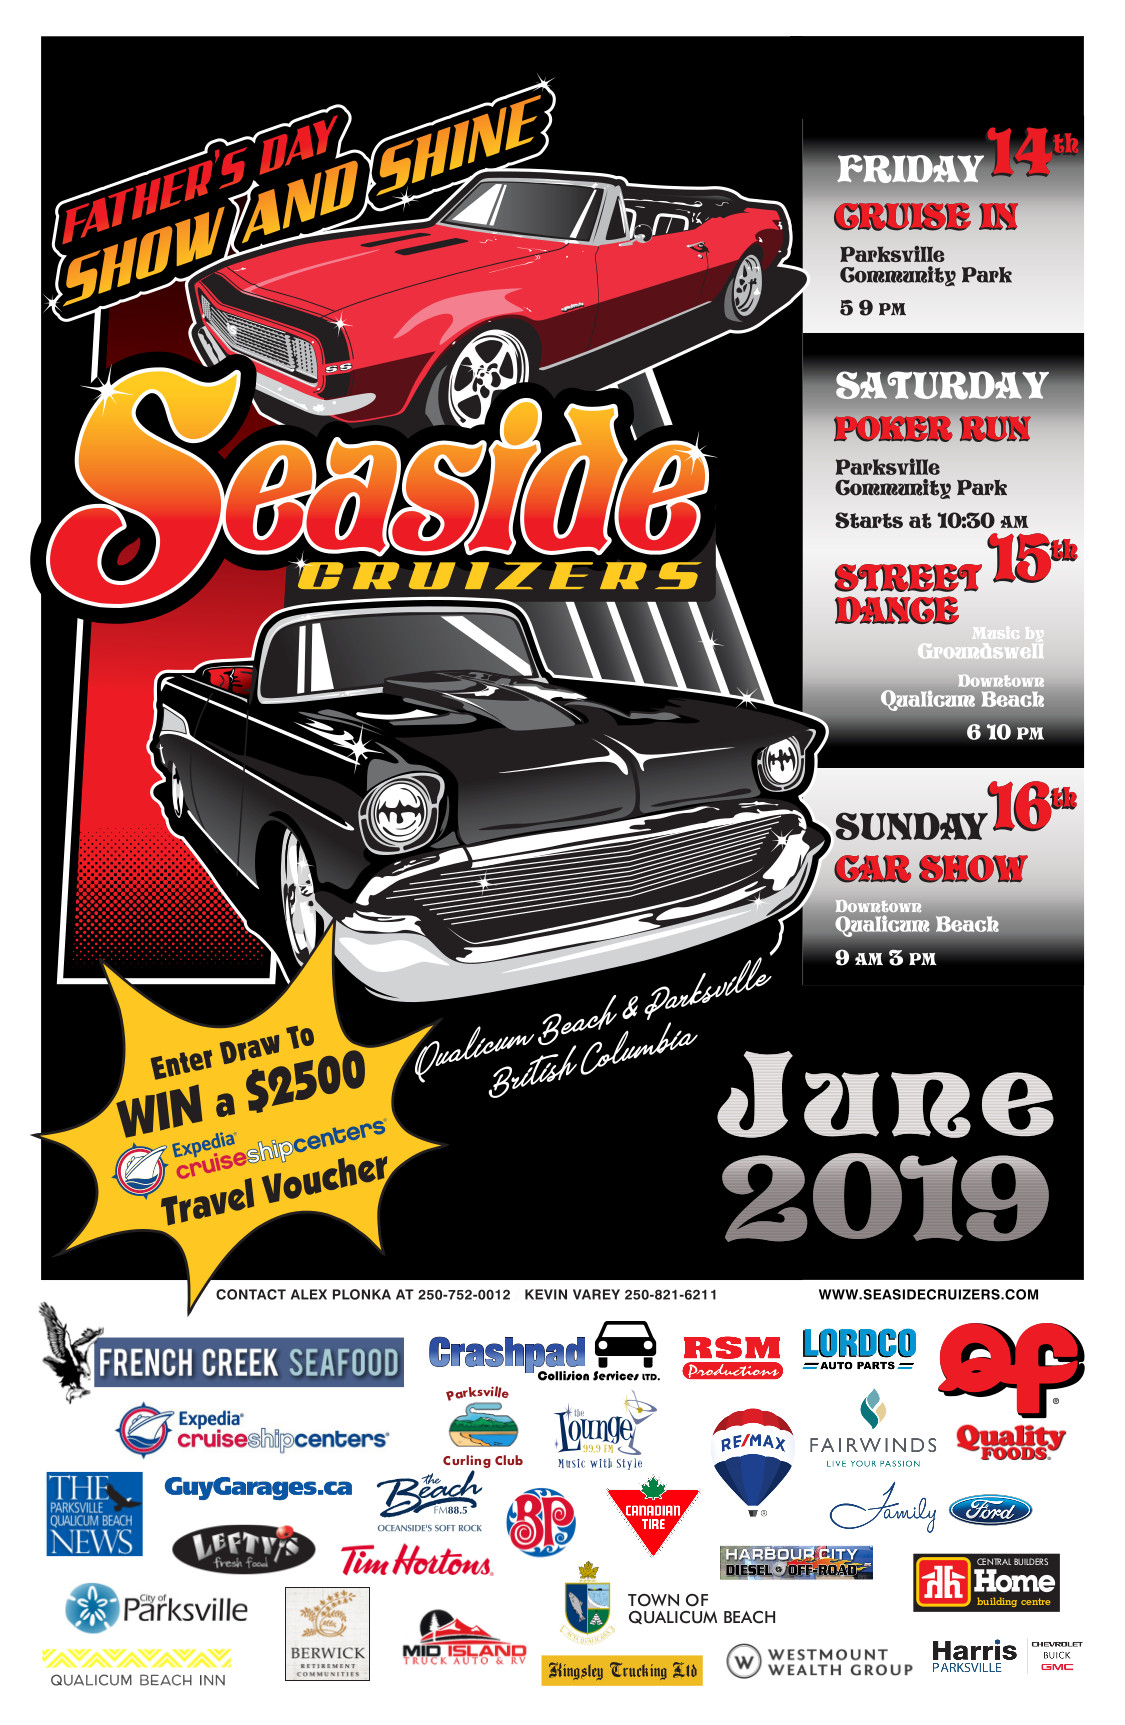 Seaside Cruizers Poster 2019 .jpg